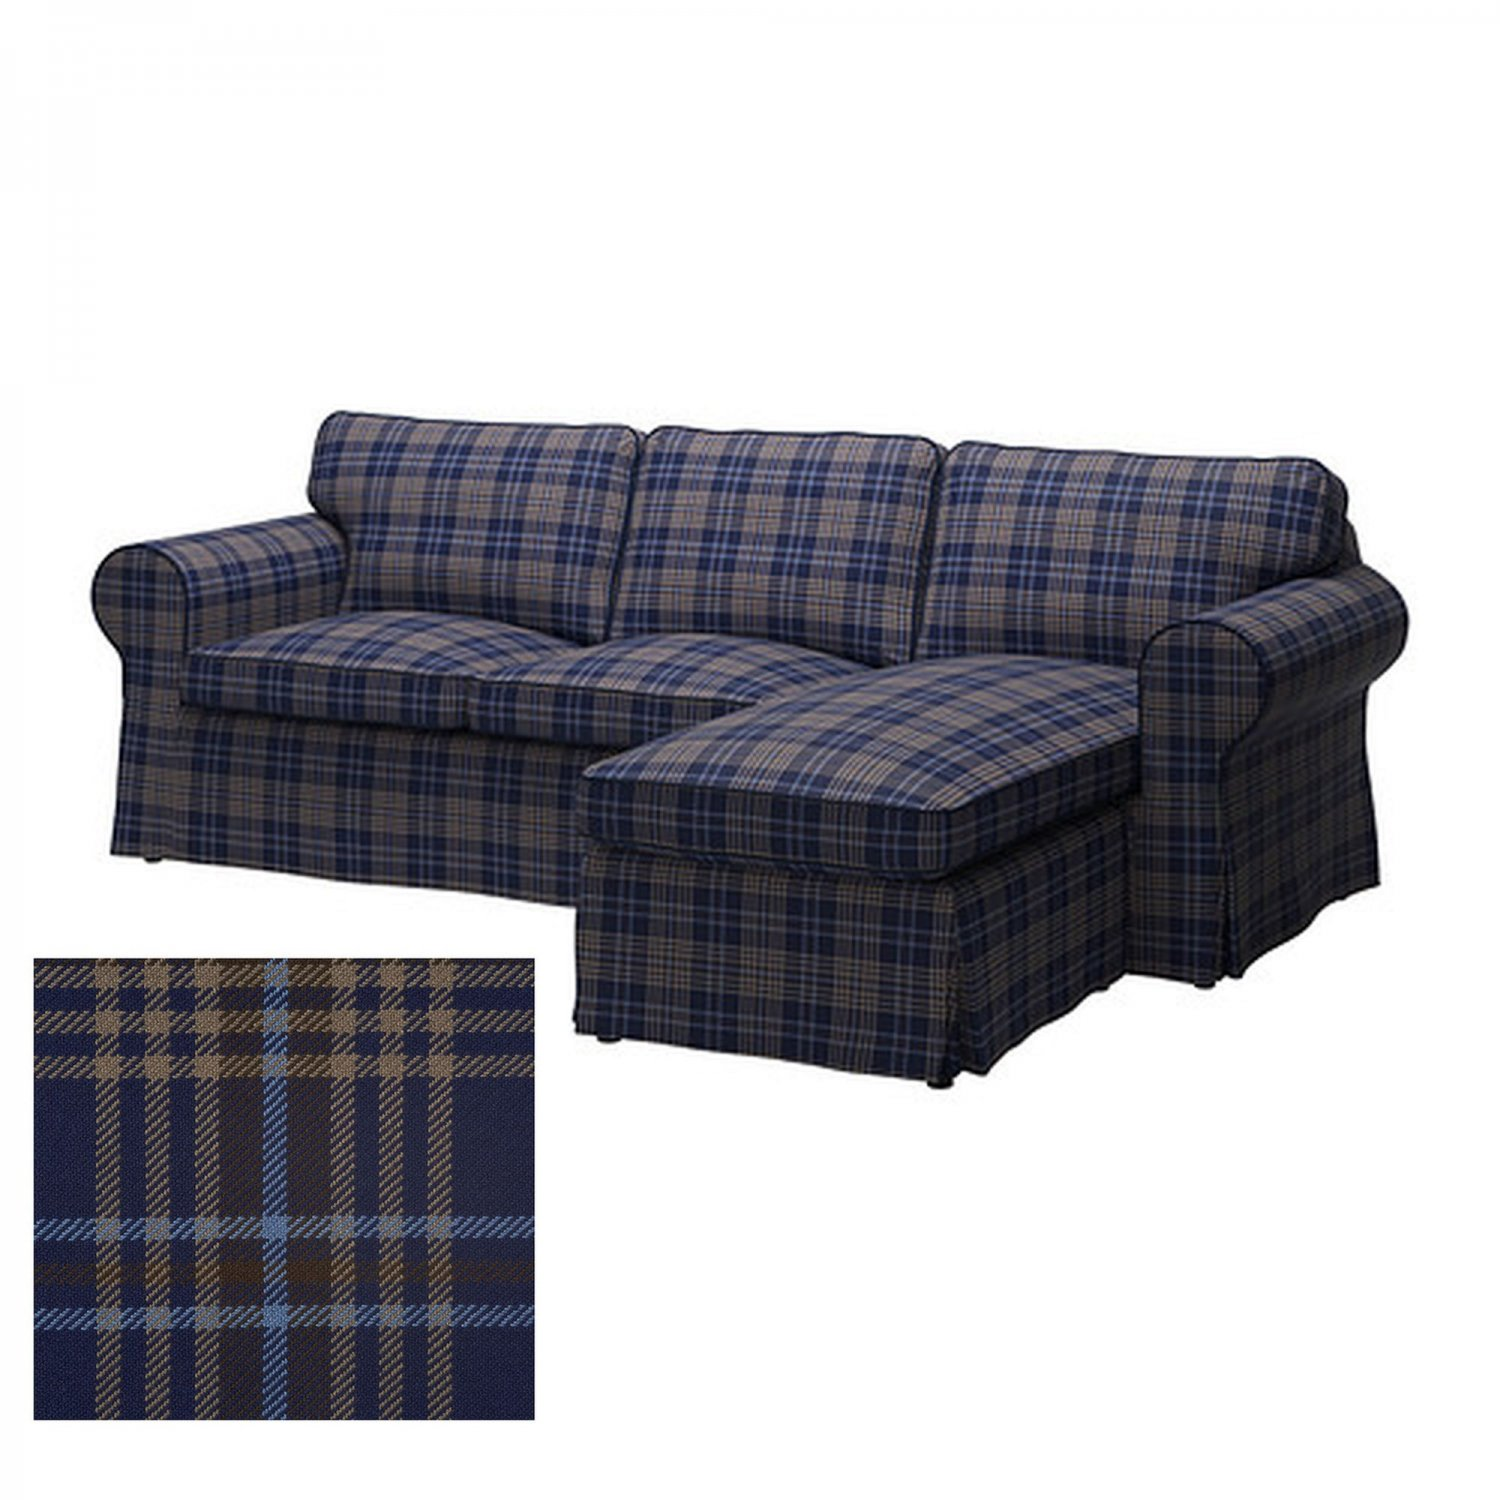 Ikea Ektorp Loveseat With Chaise Cover Slipcover Rutna Multi Plaid Blue